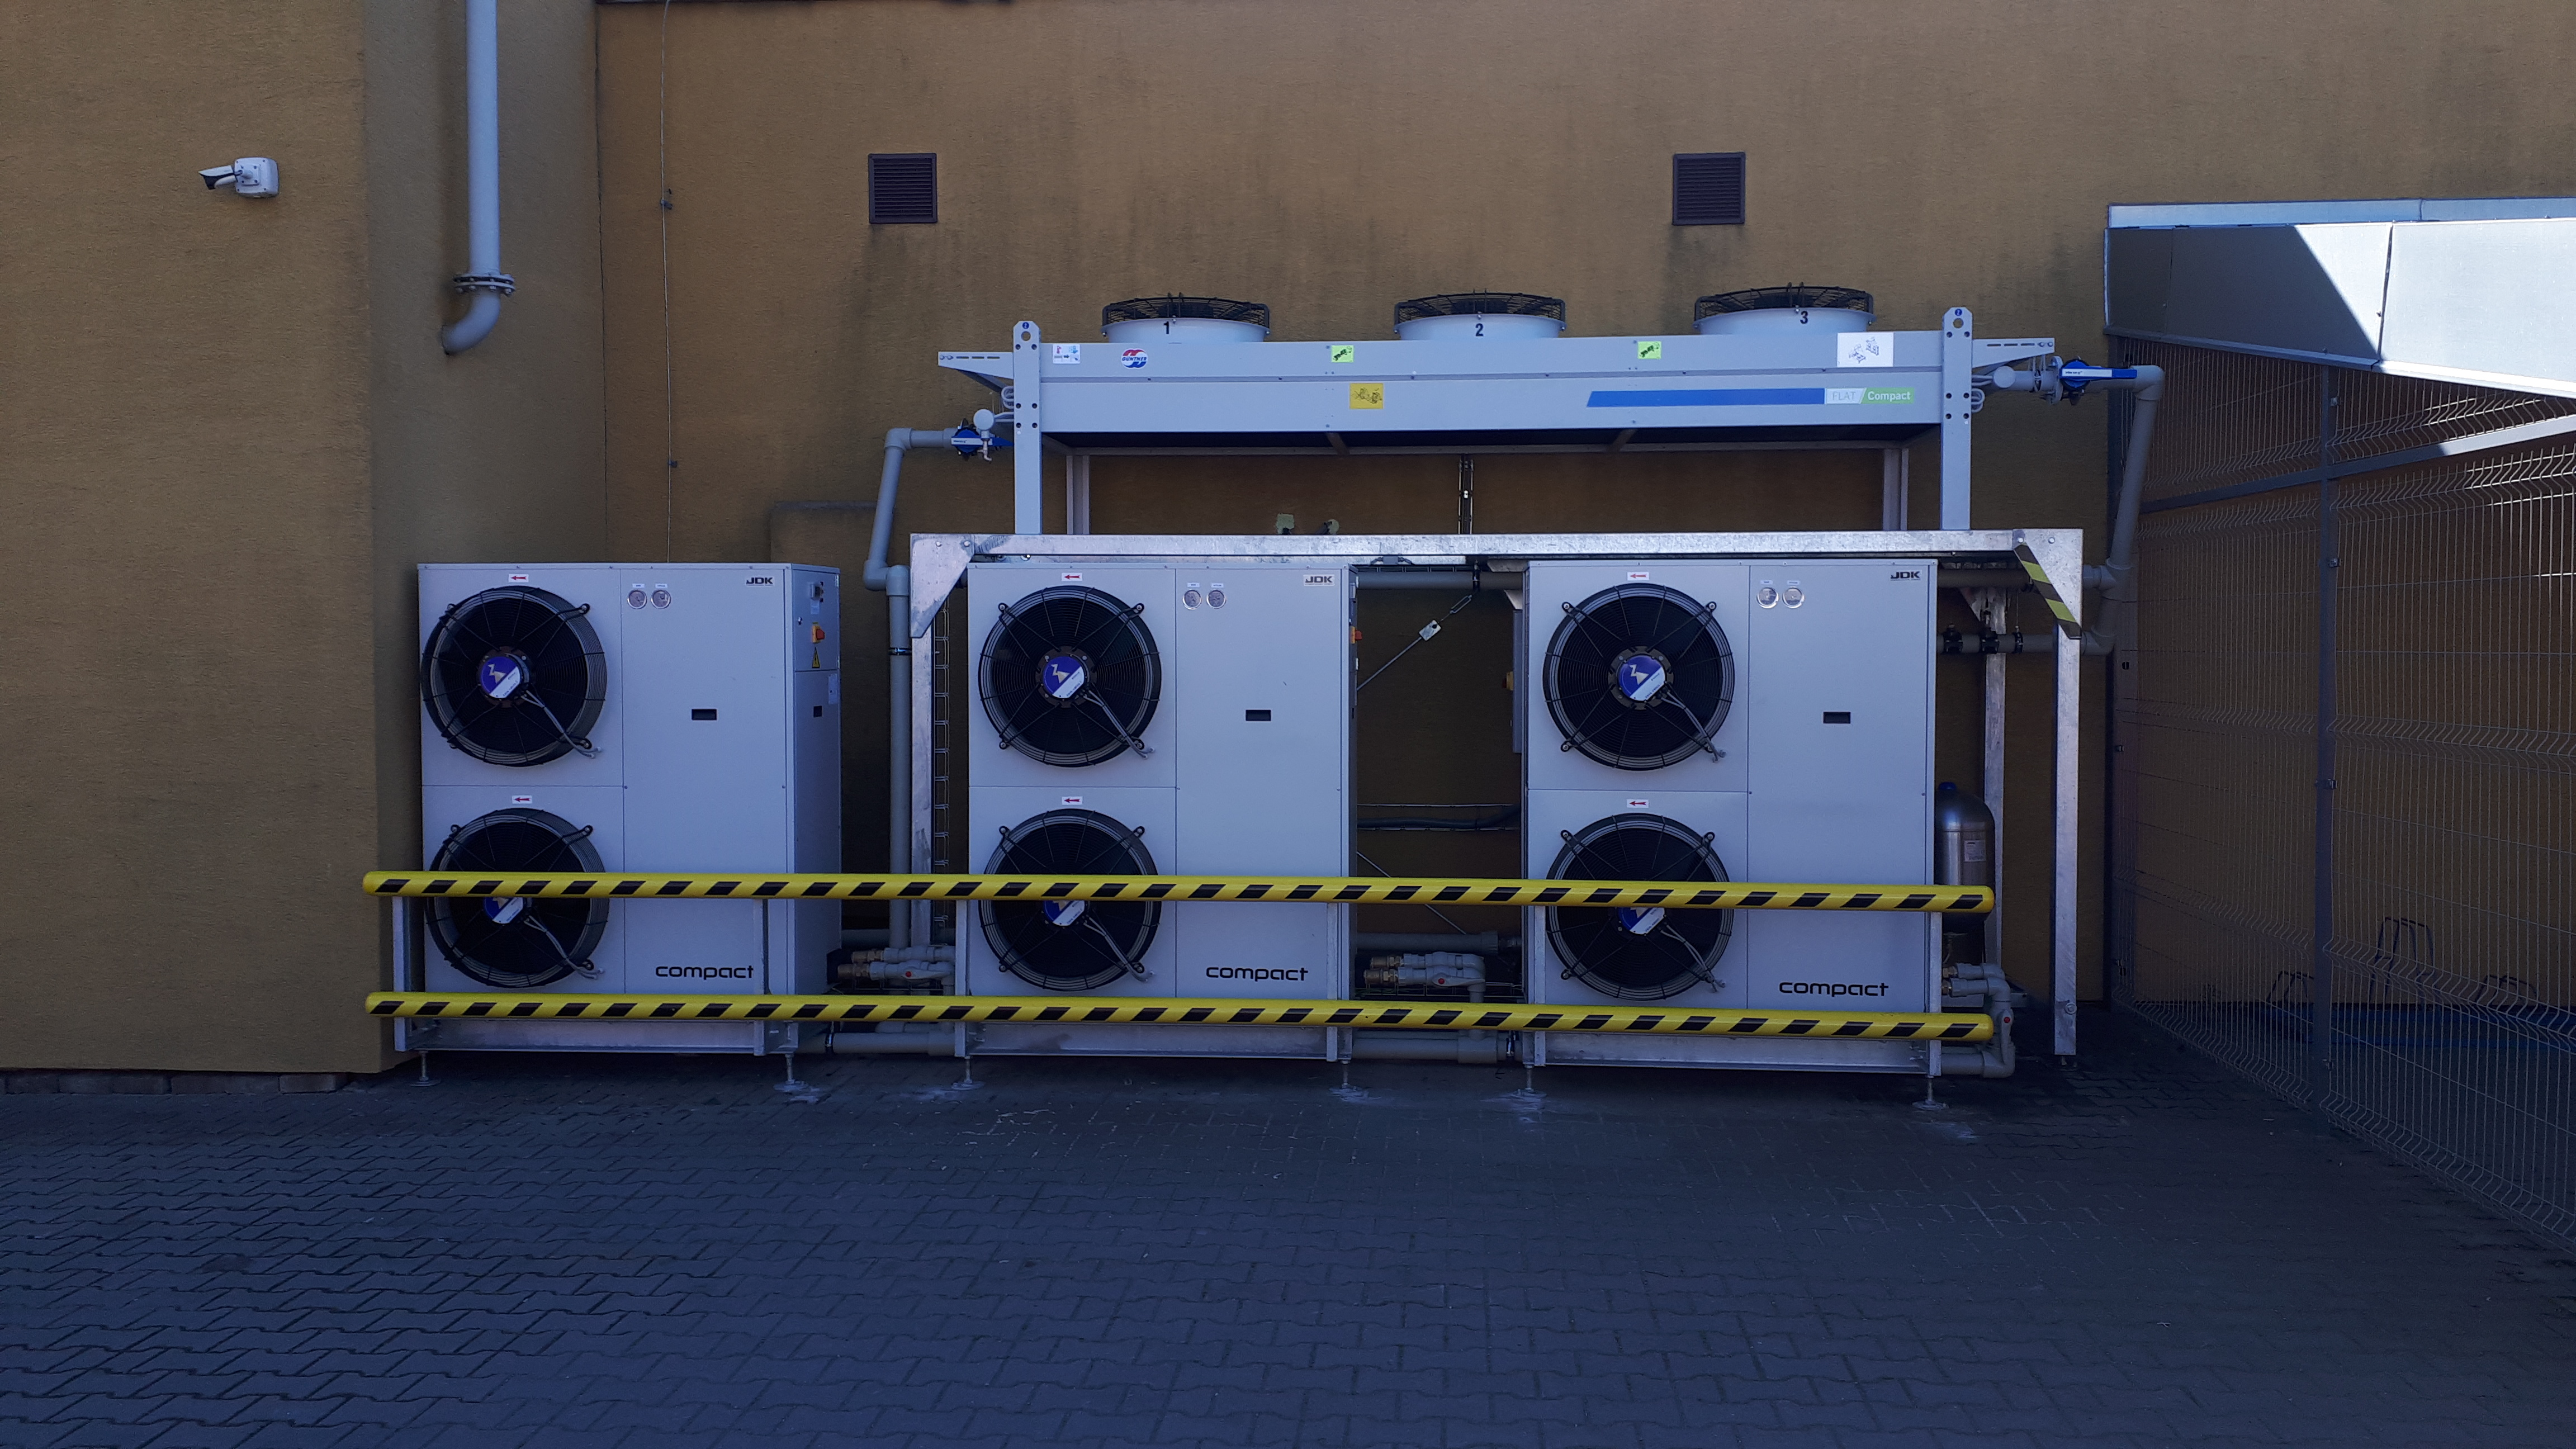 3x chiller 50kW 1x freecooling 150kW